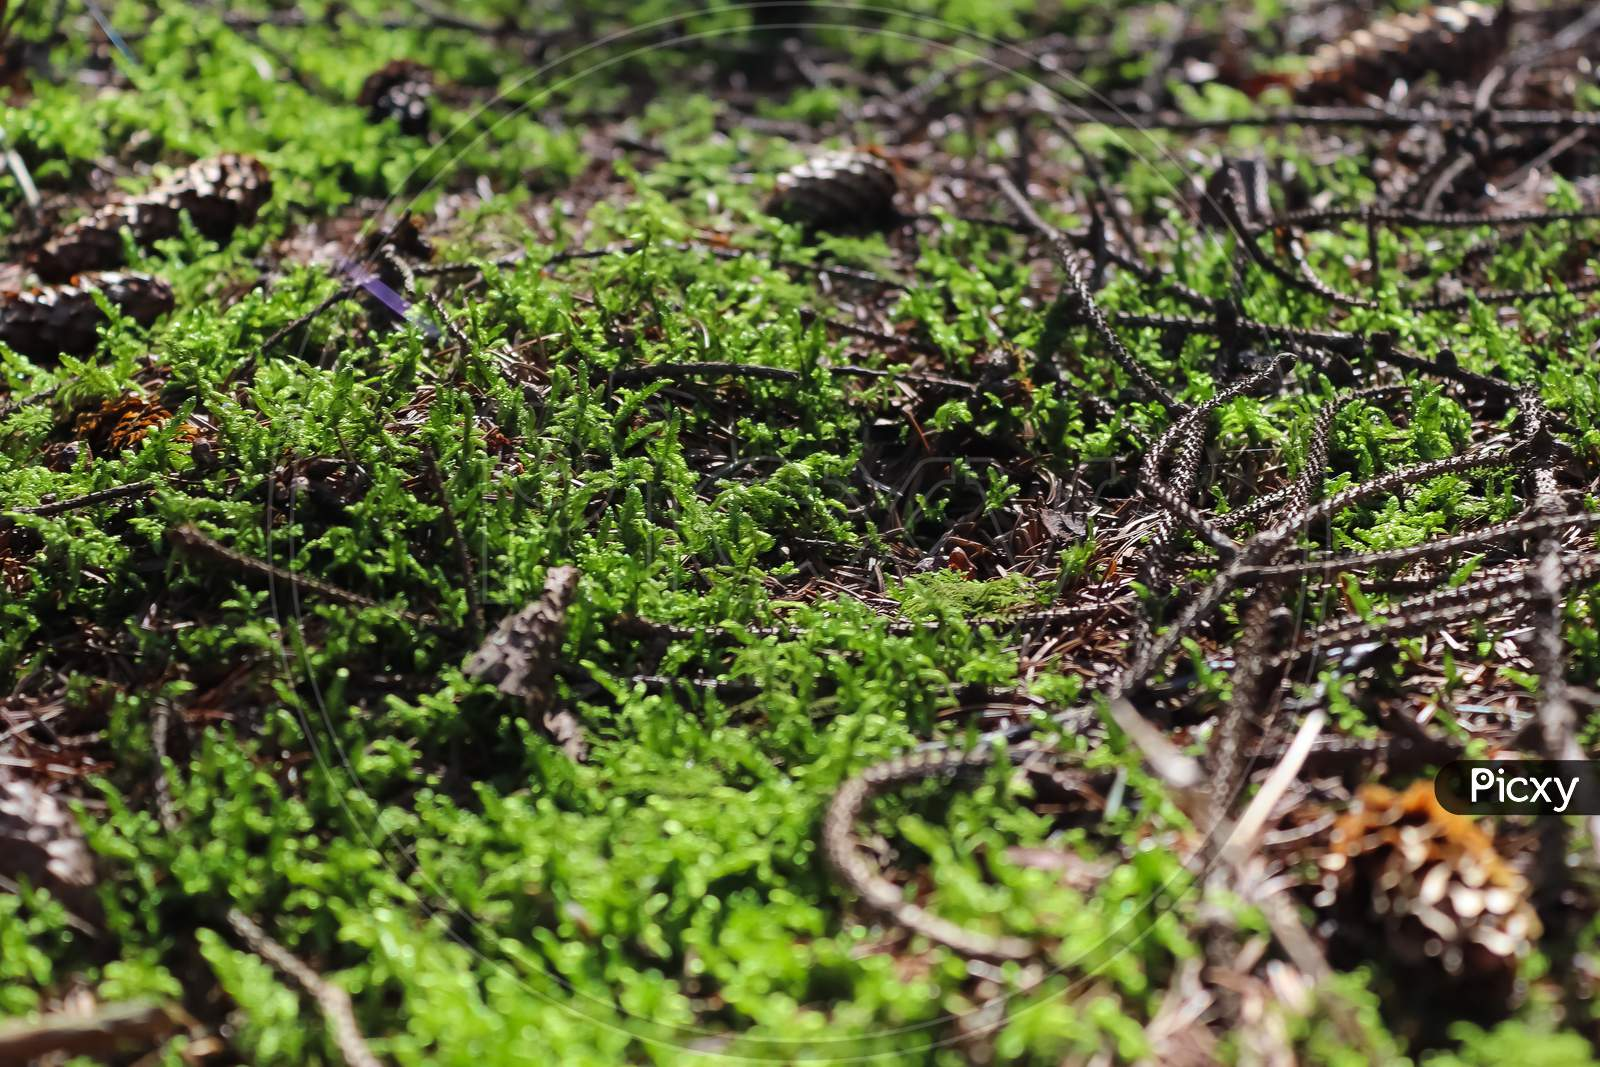 Detailed Close Up View On A Forest Ground Texture With Moss And Branches